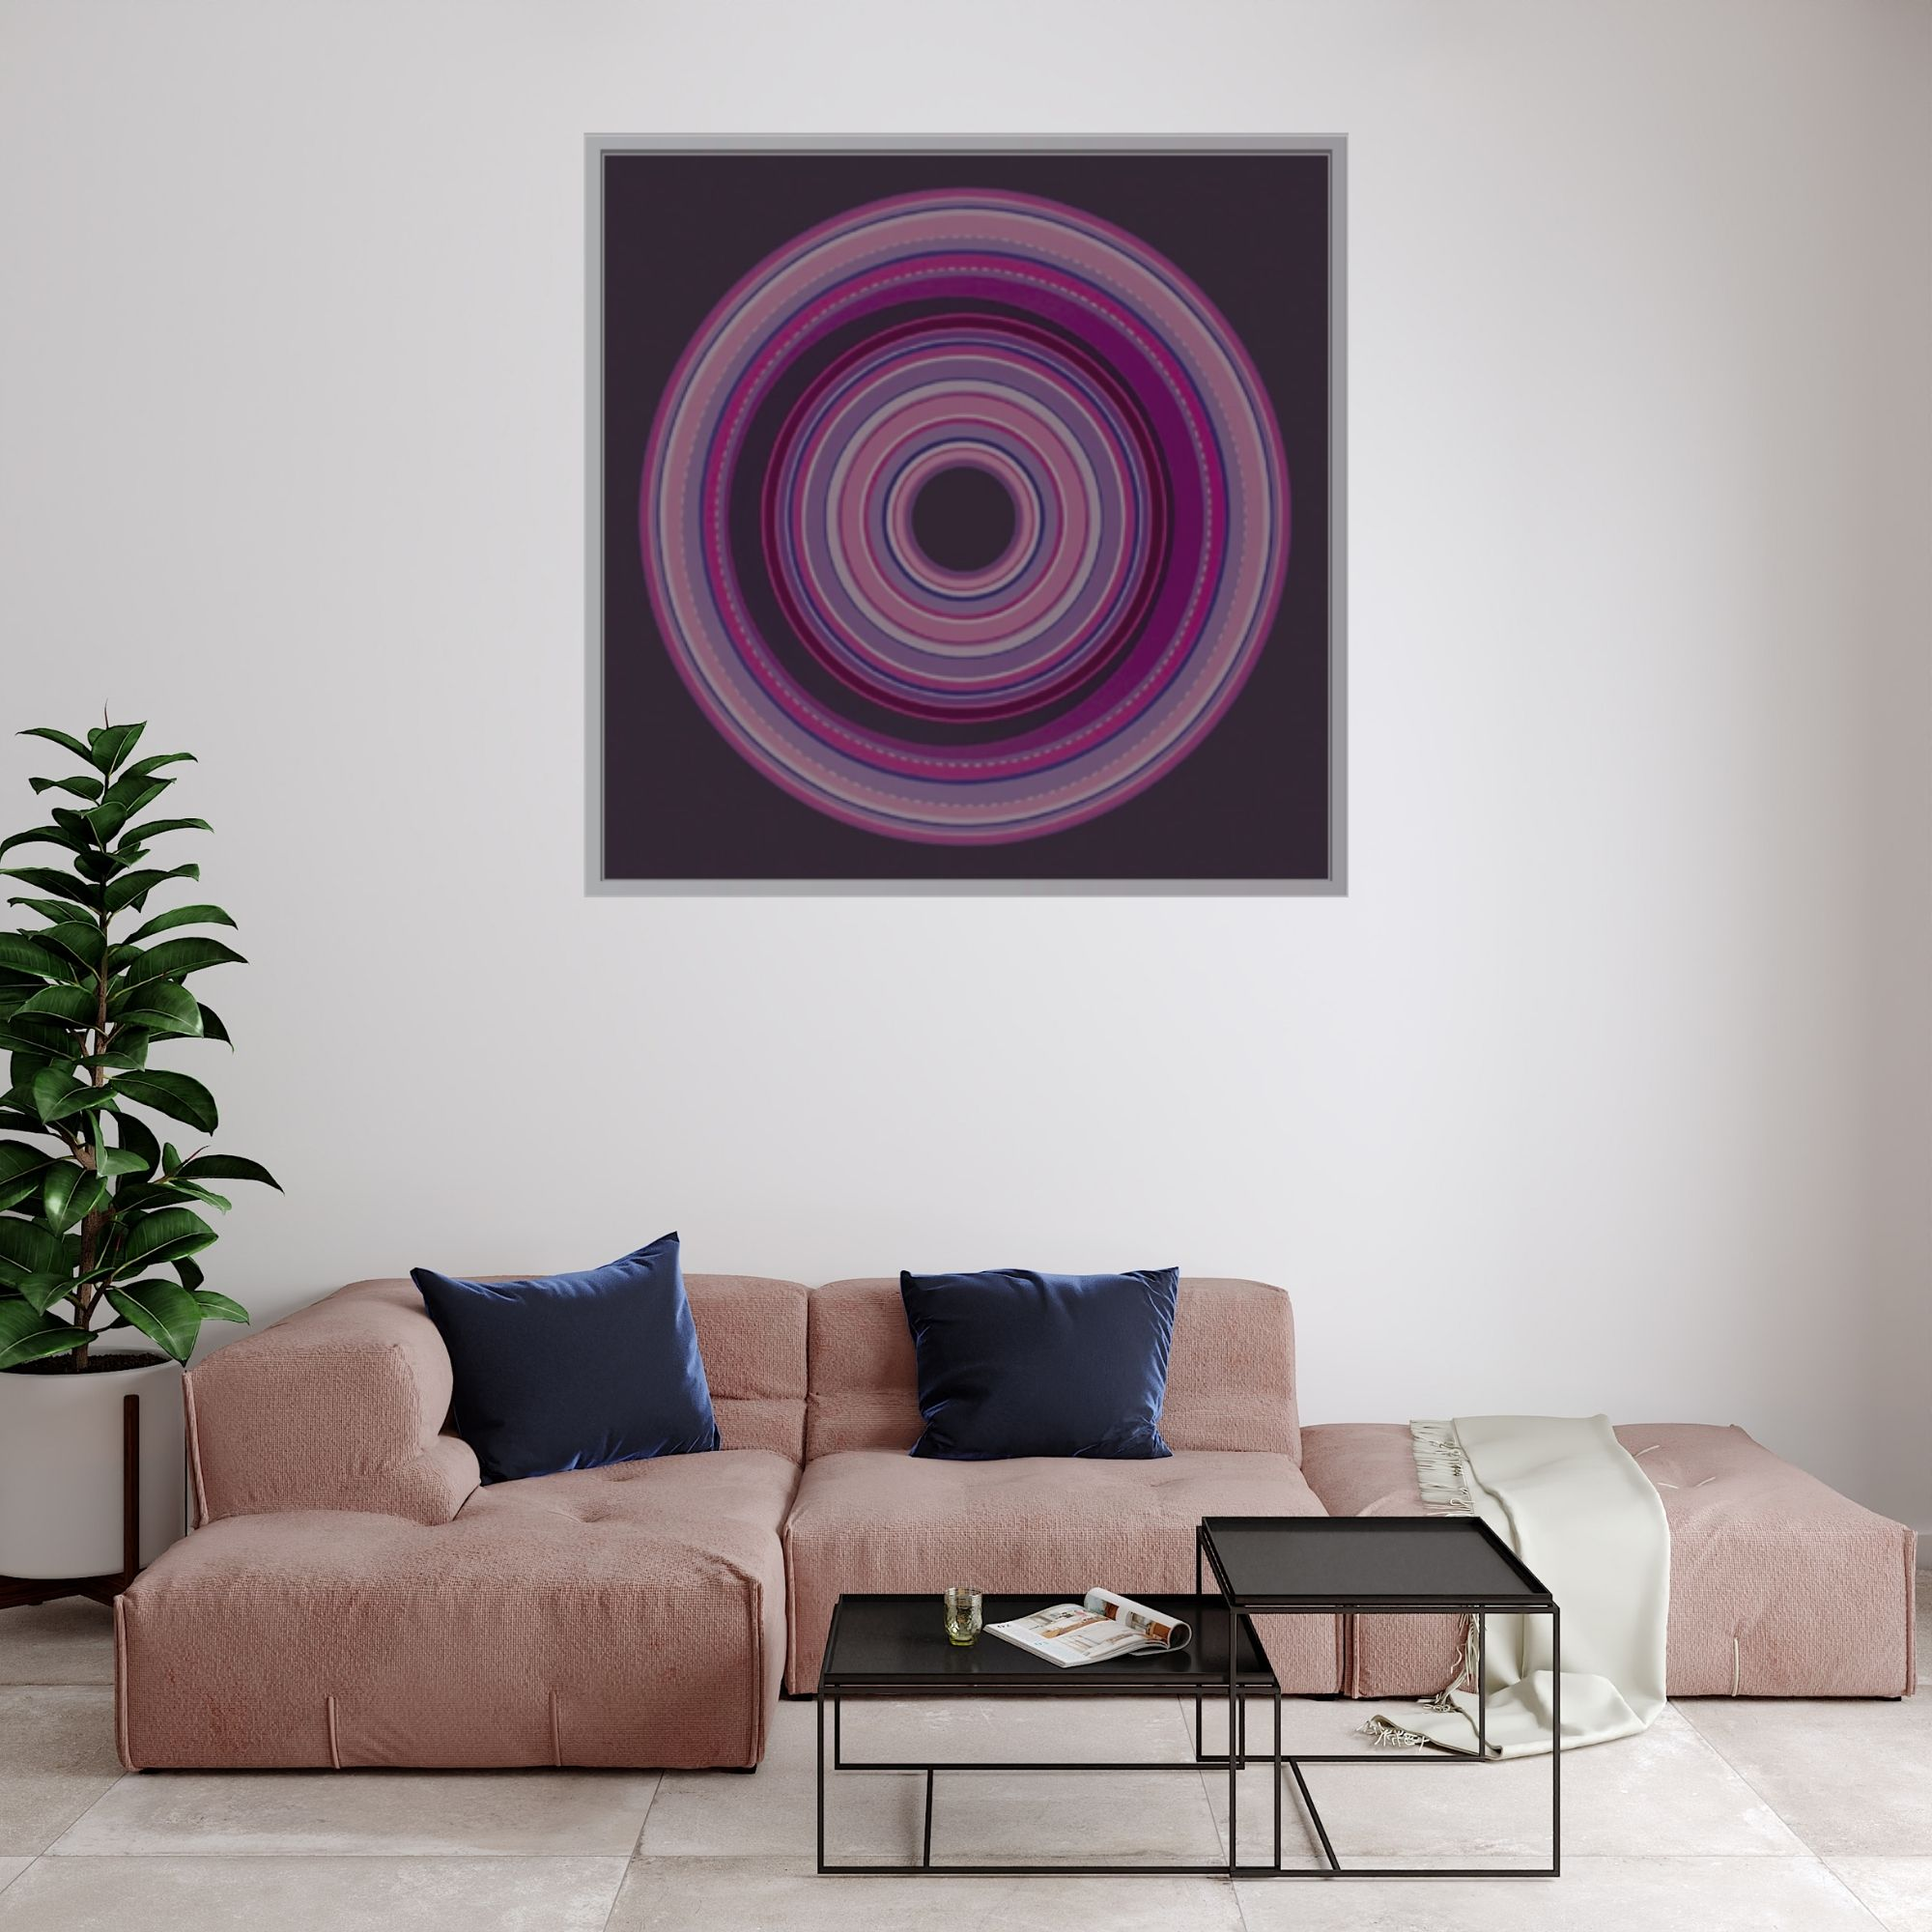 Circle Of Life (Vol 21)_Acrylic on Canvas_24x24 inches